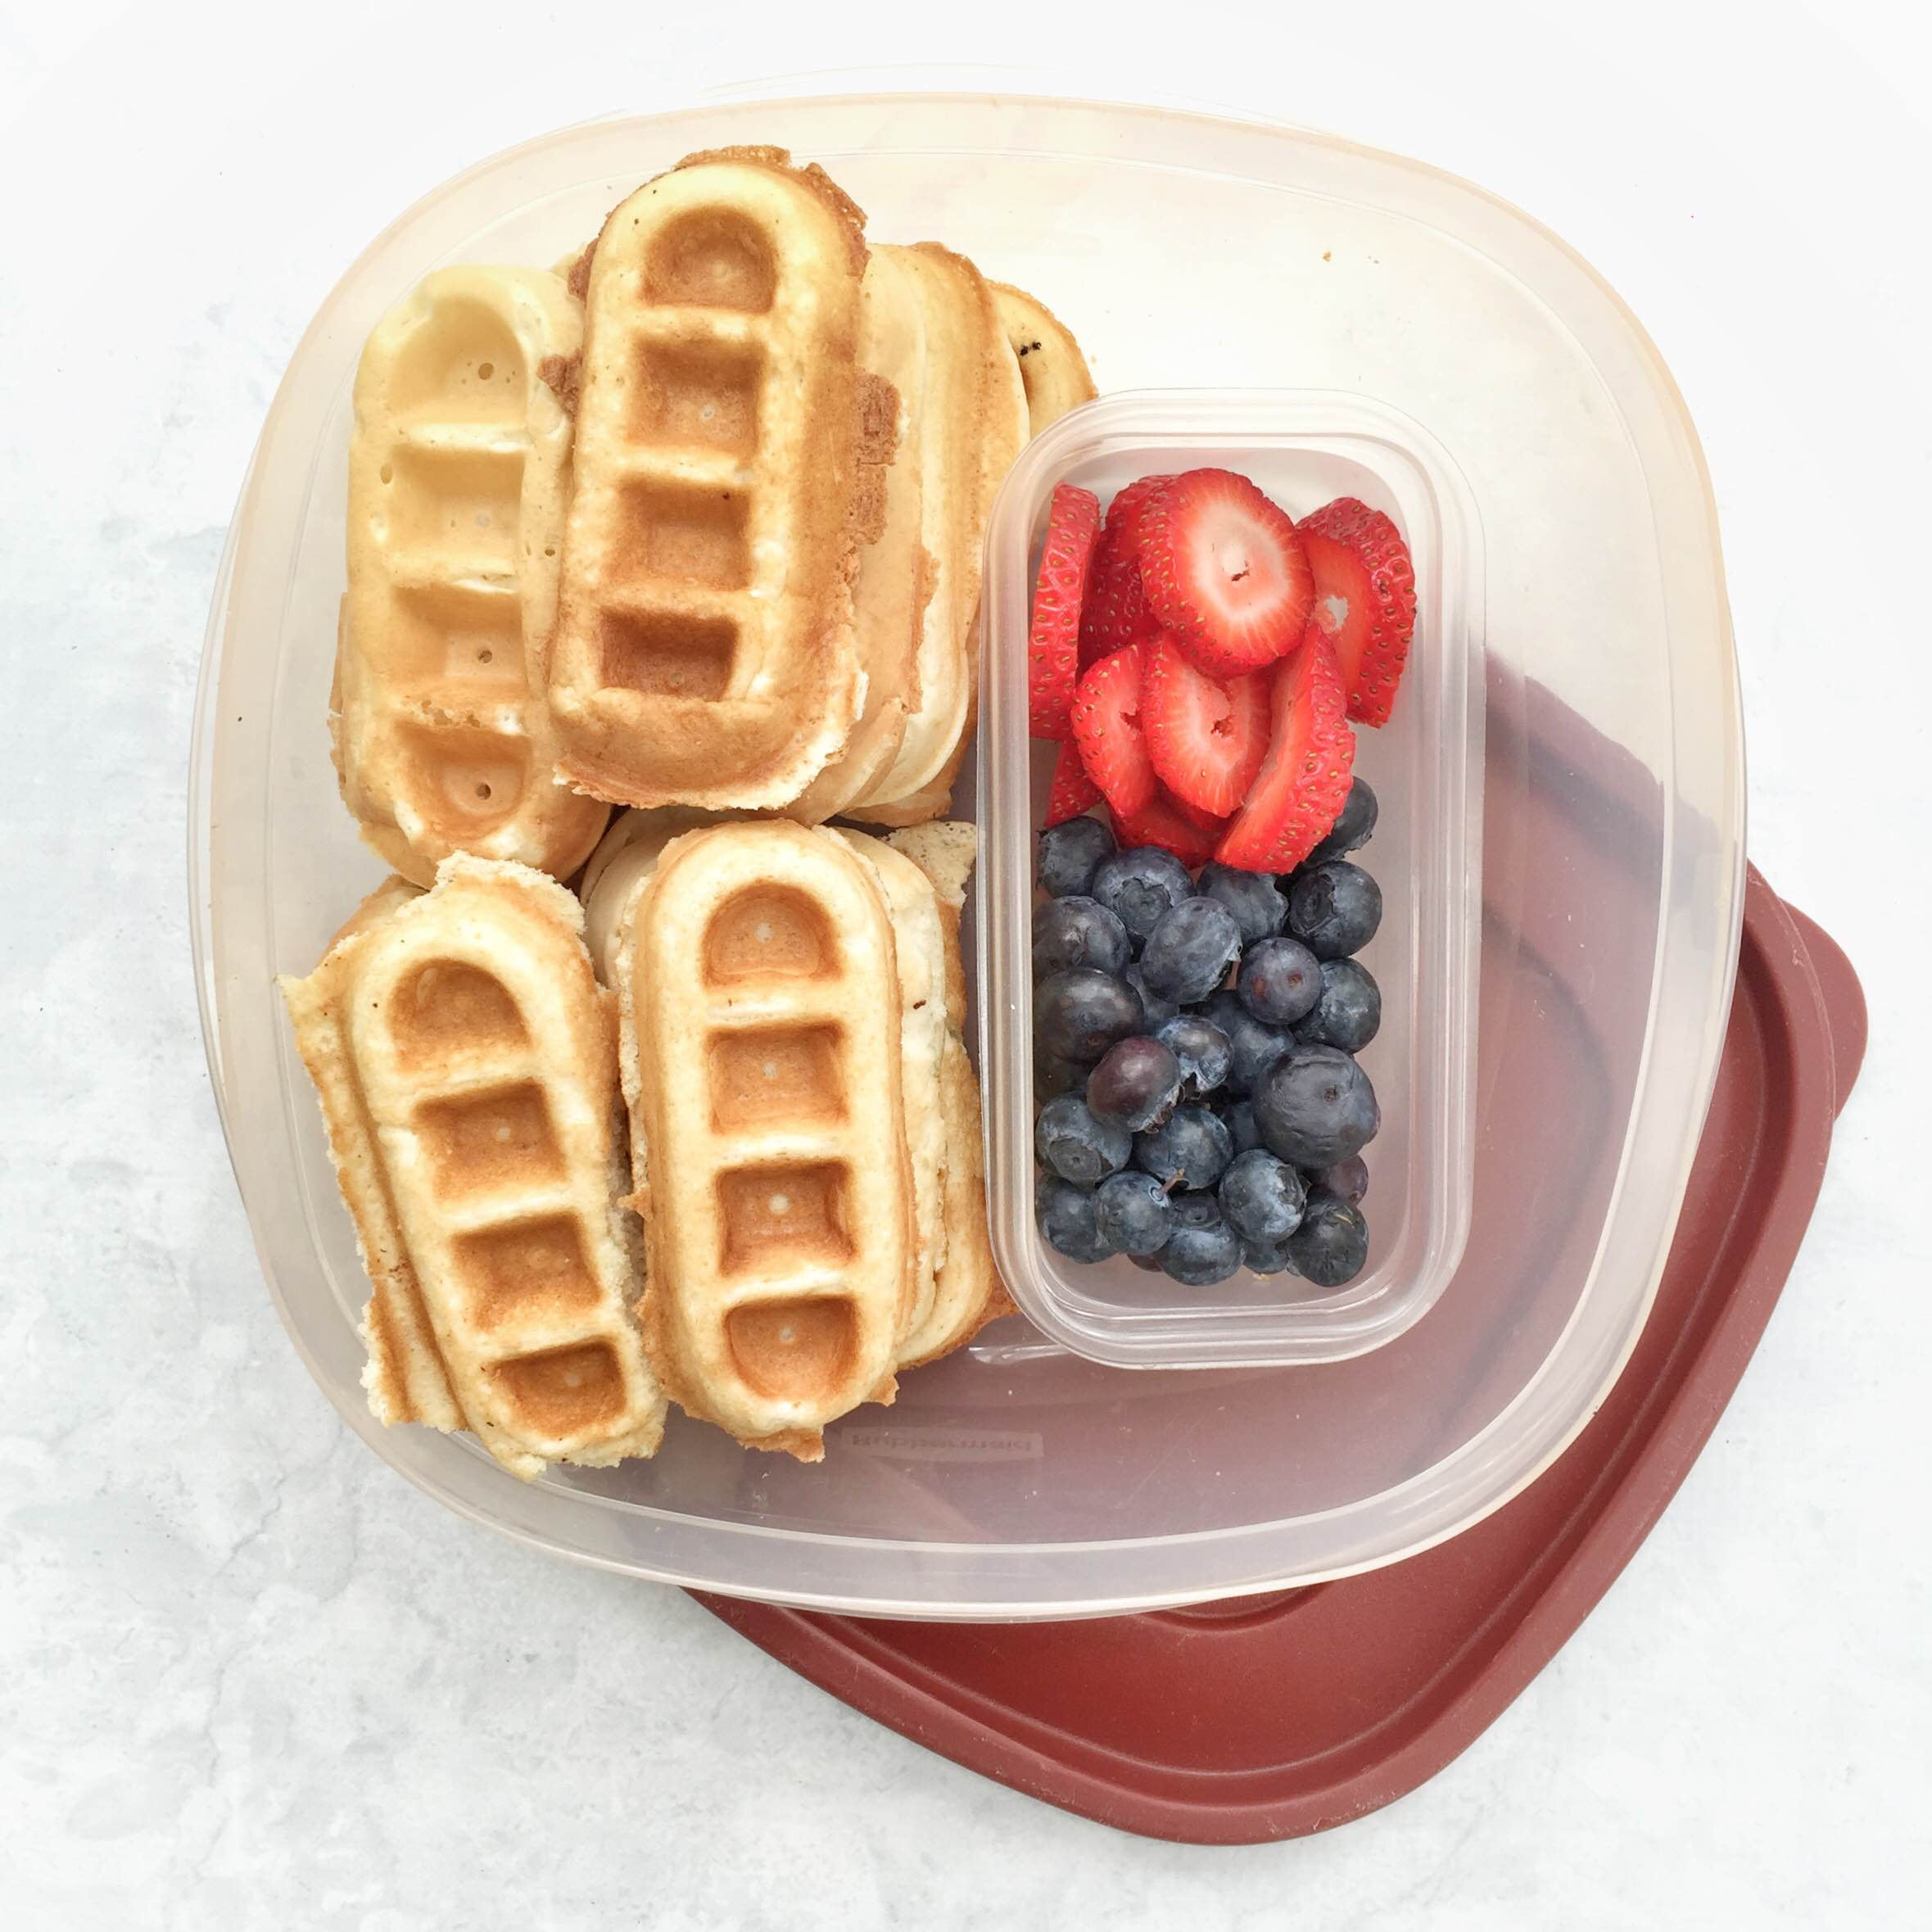 How to make breakfast more fun with a weekday waffle bar! Fun breakfast idea for kids or adults. GinaKirk.com @ginaekirk